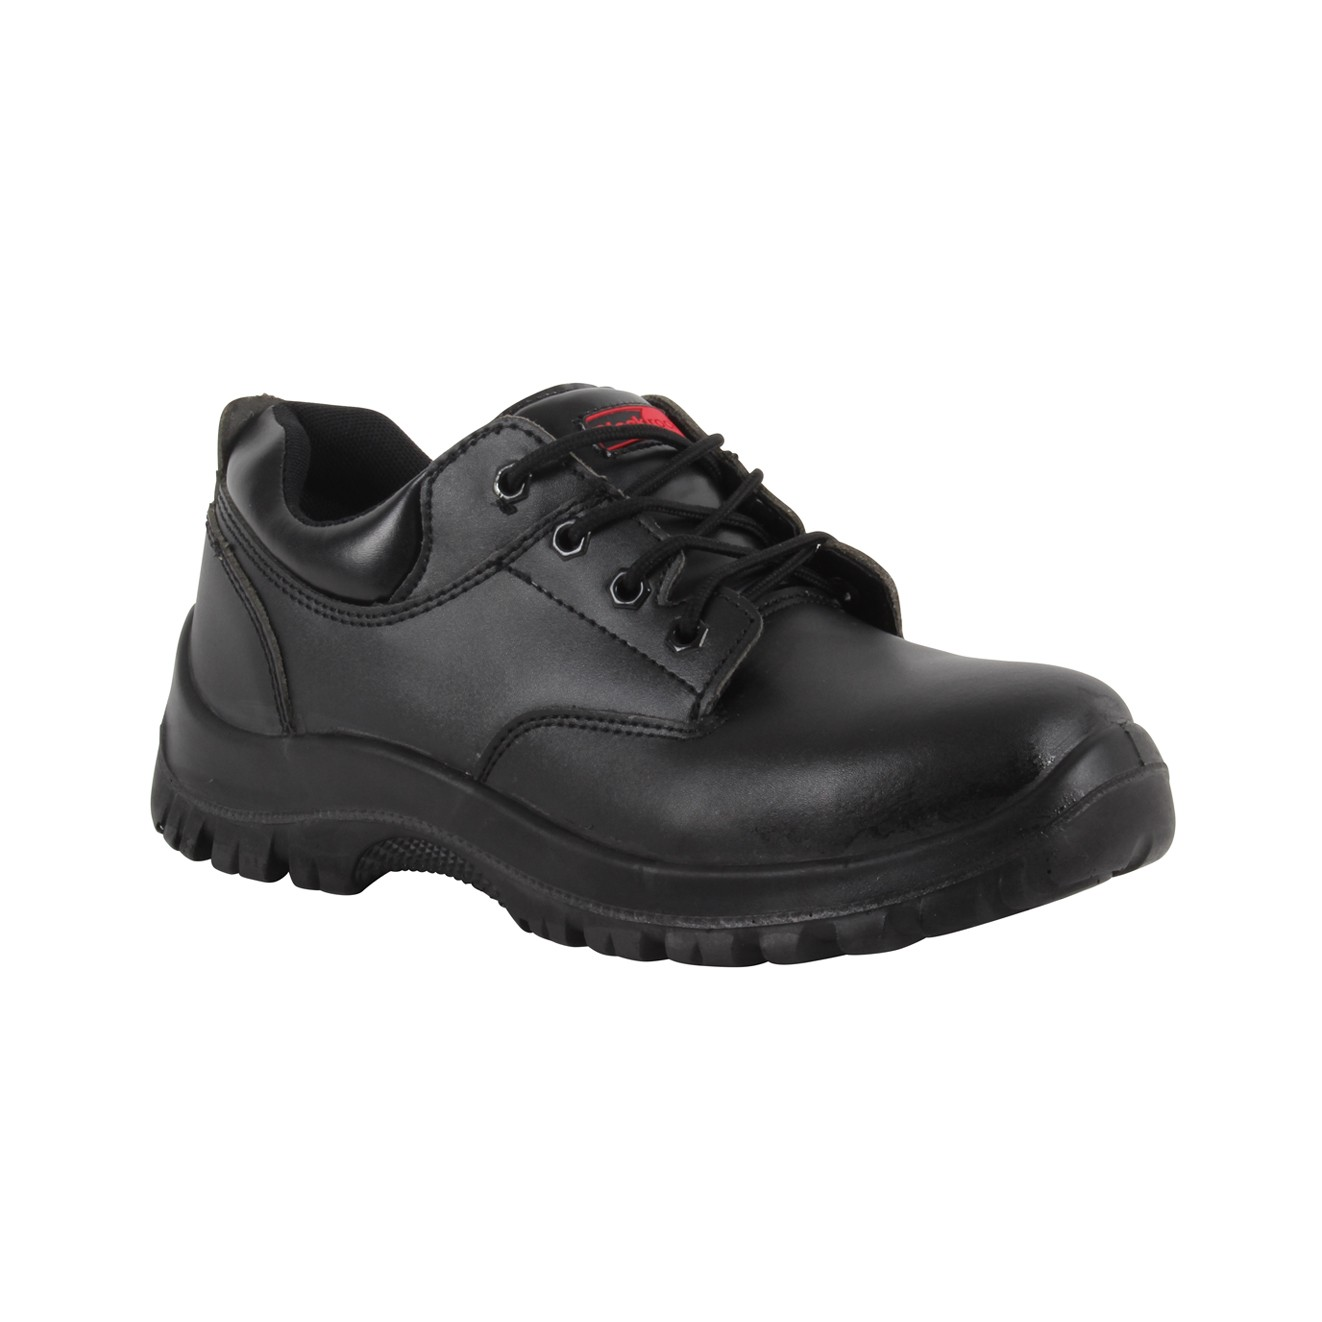 Ultimate Safety Shoe